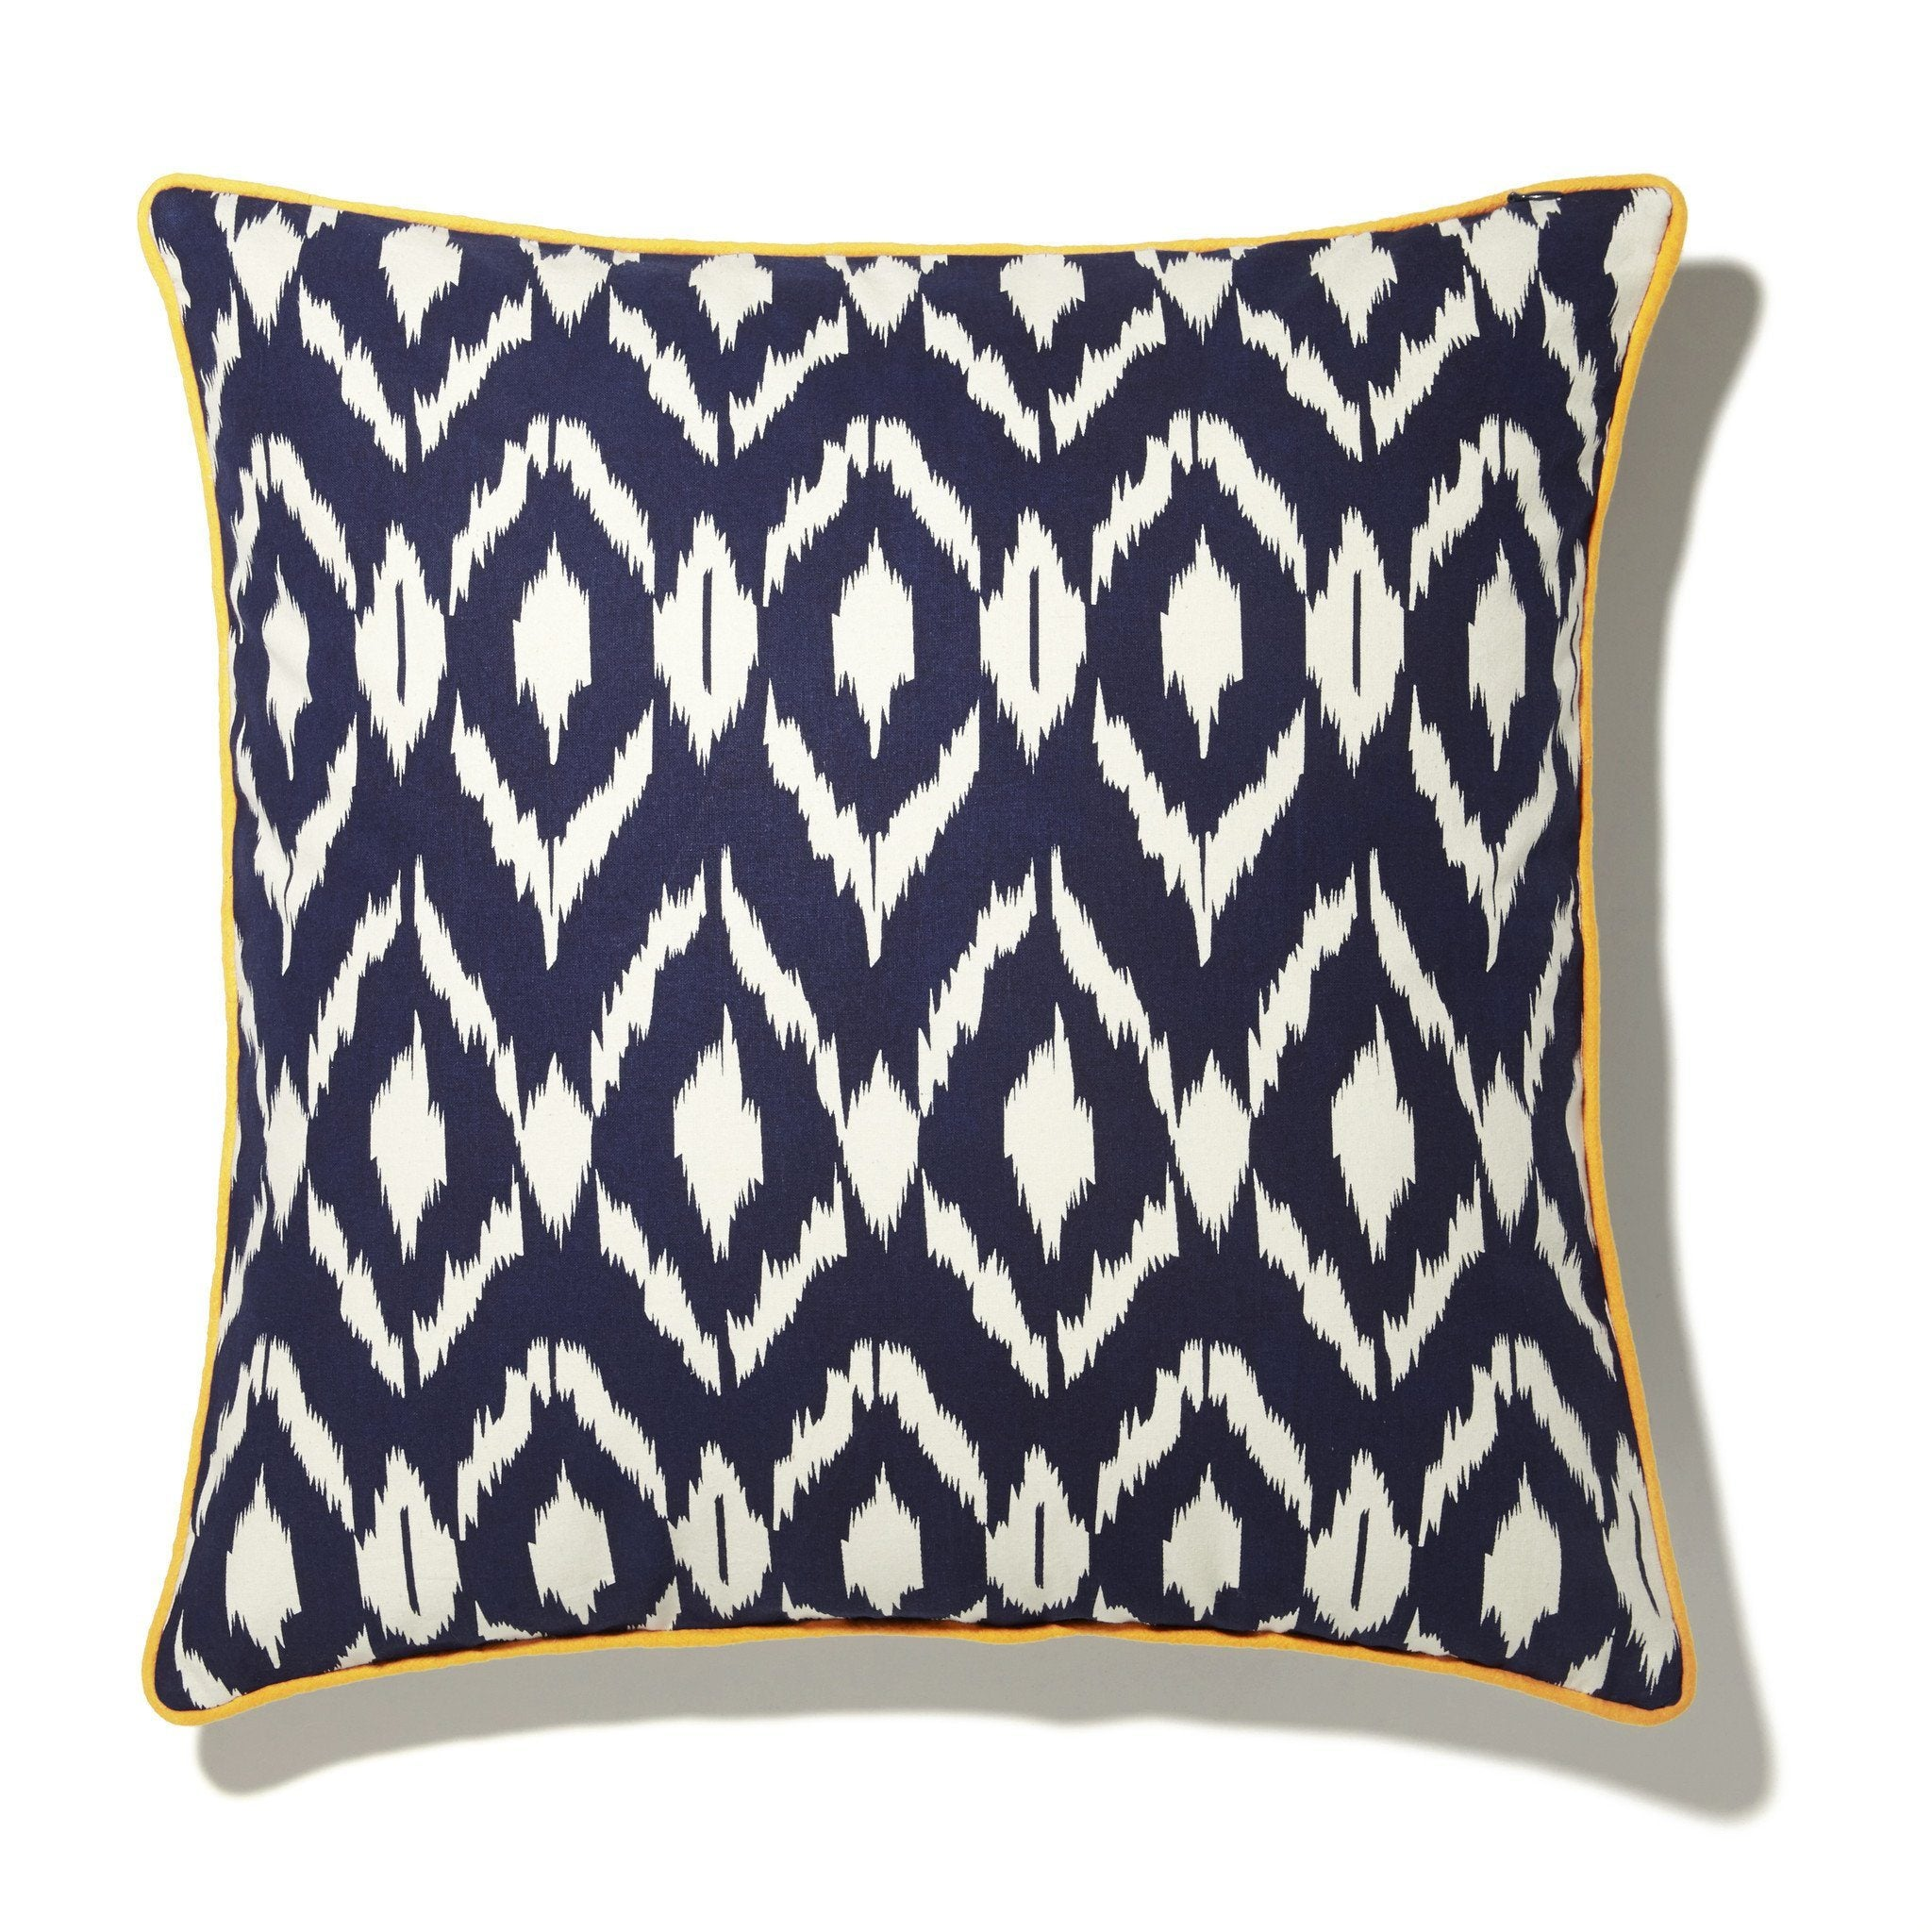 Iblyth Throw Pillow - Cushions - Stitches and Tweed - Naiise